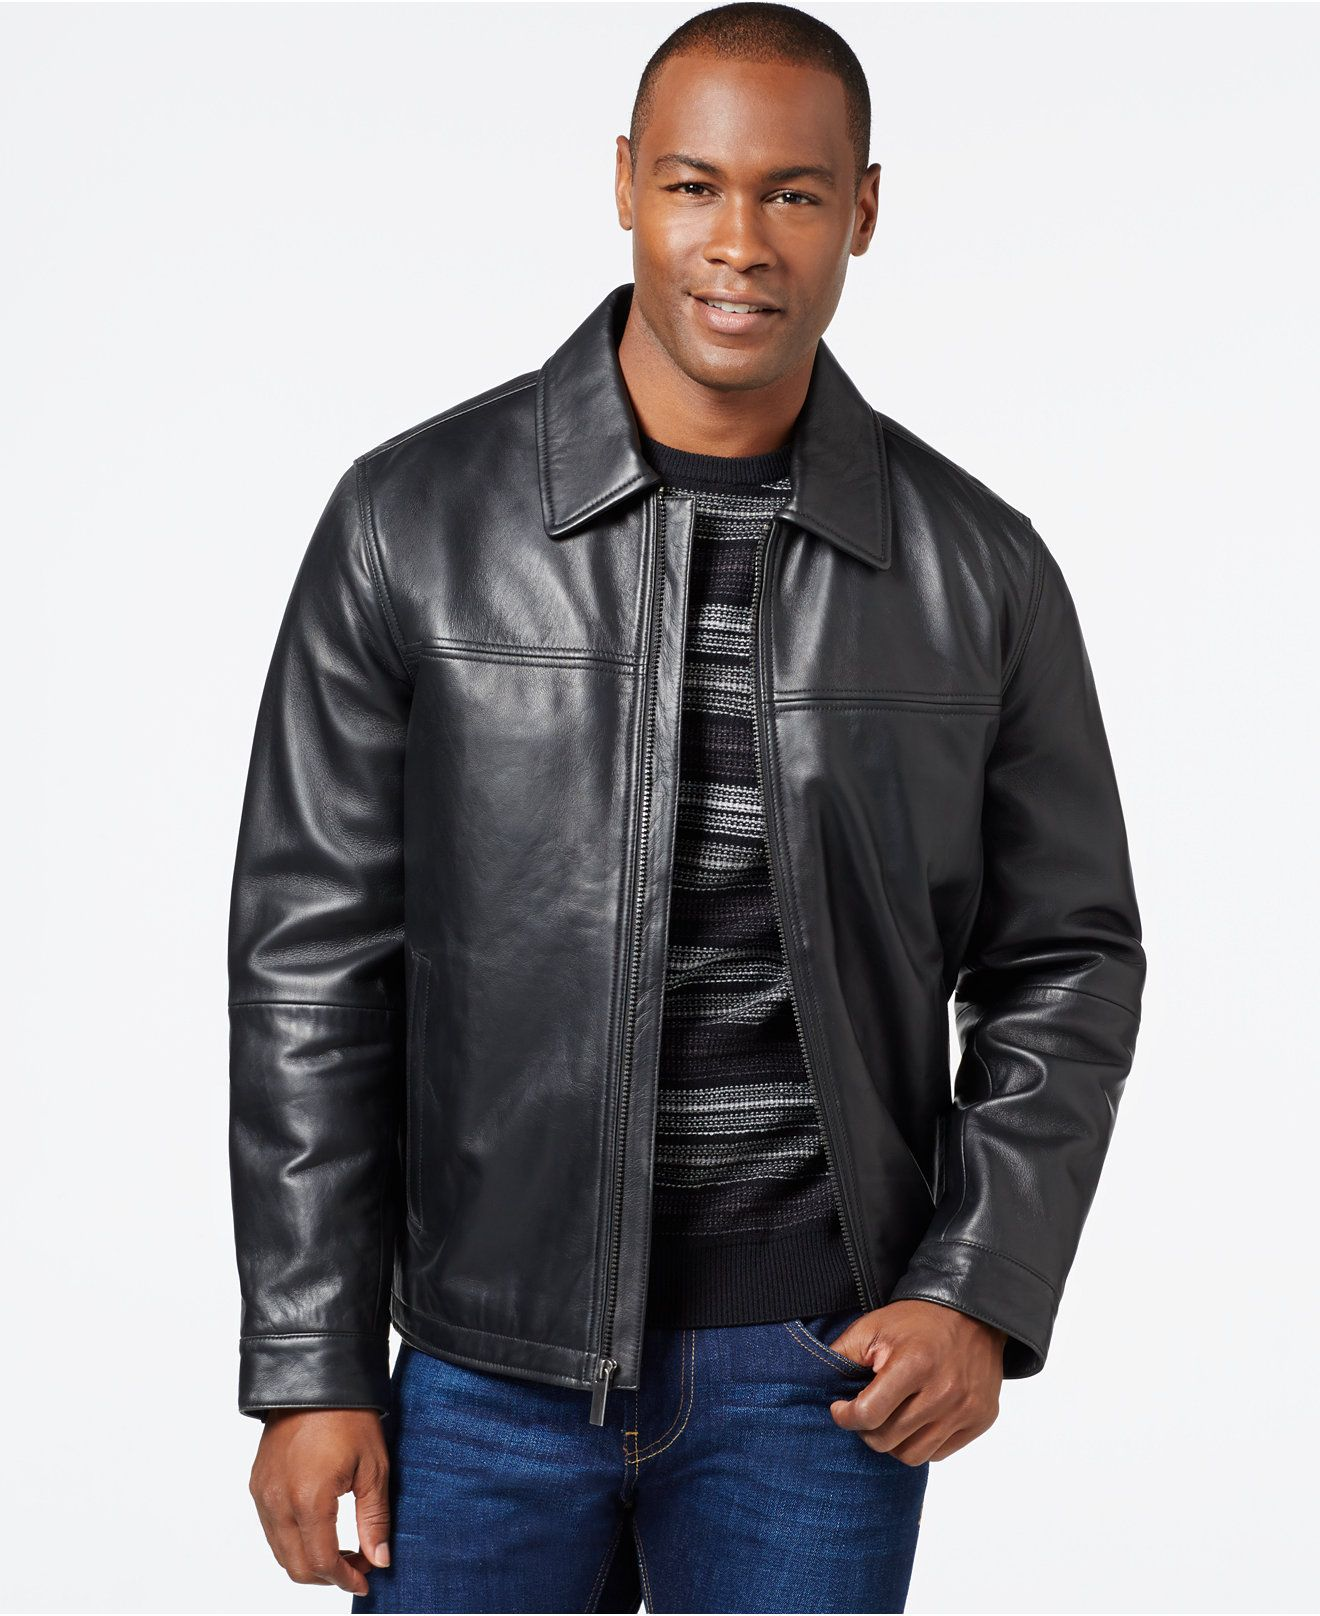 Perry Ellis Big Tall Open Bottom Leather Jacket With Printed Lining Big Tall Men Macy S Leather Jacket Leather Jacket Men Jackets [ 1616 x 1320 Pixel ]